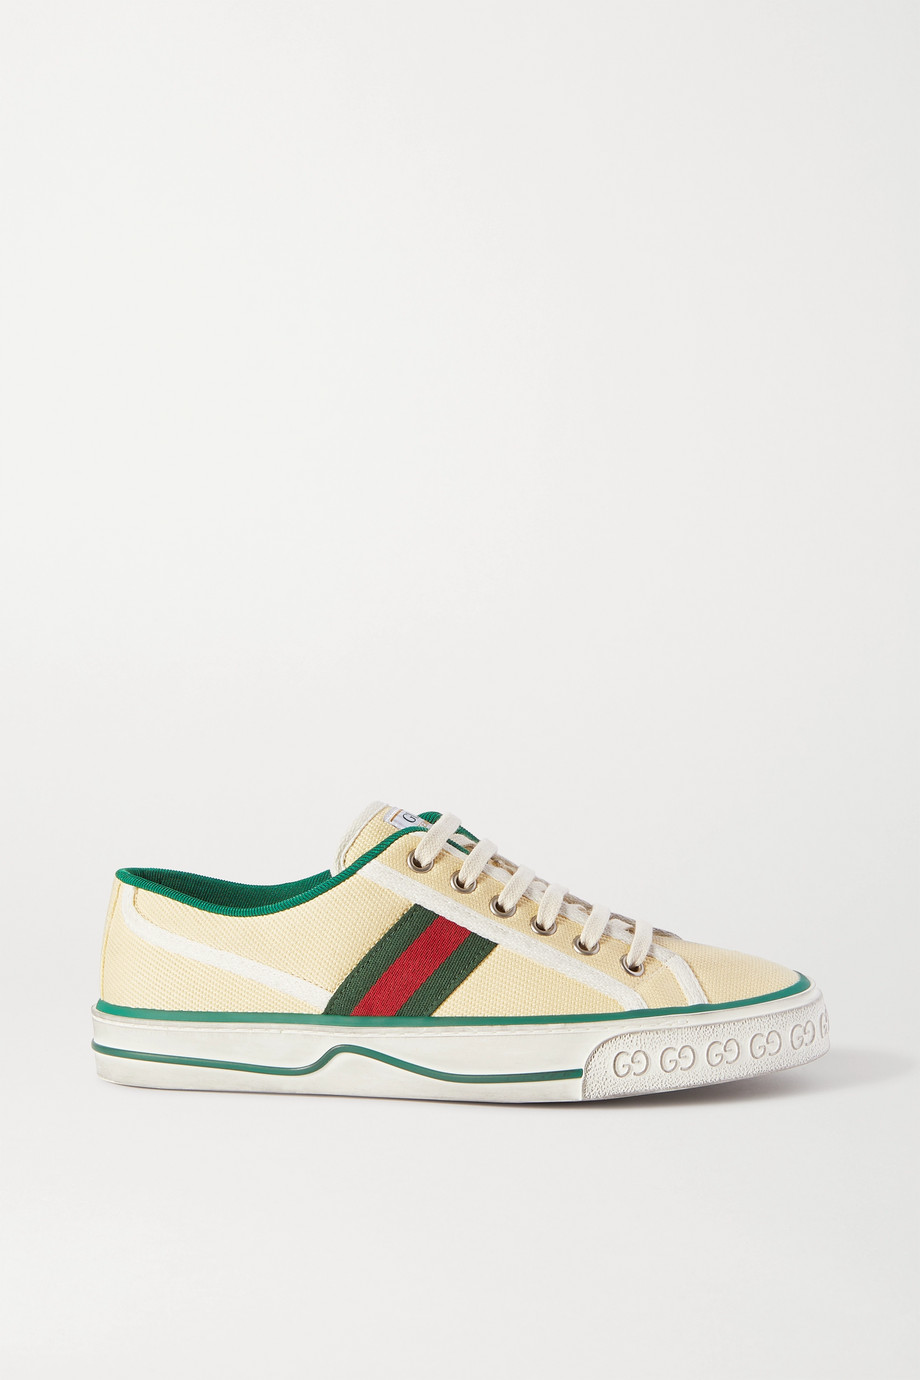 Gucci Baskets en toile à ruban web